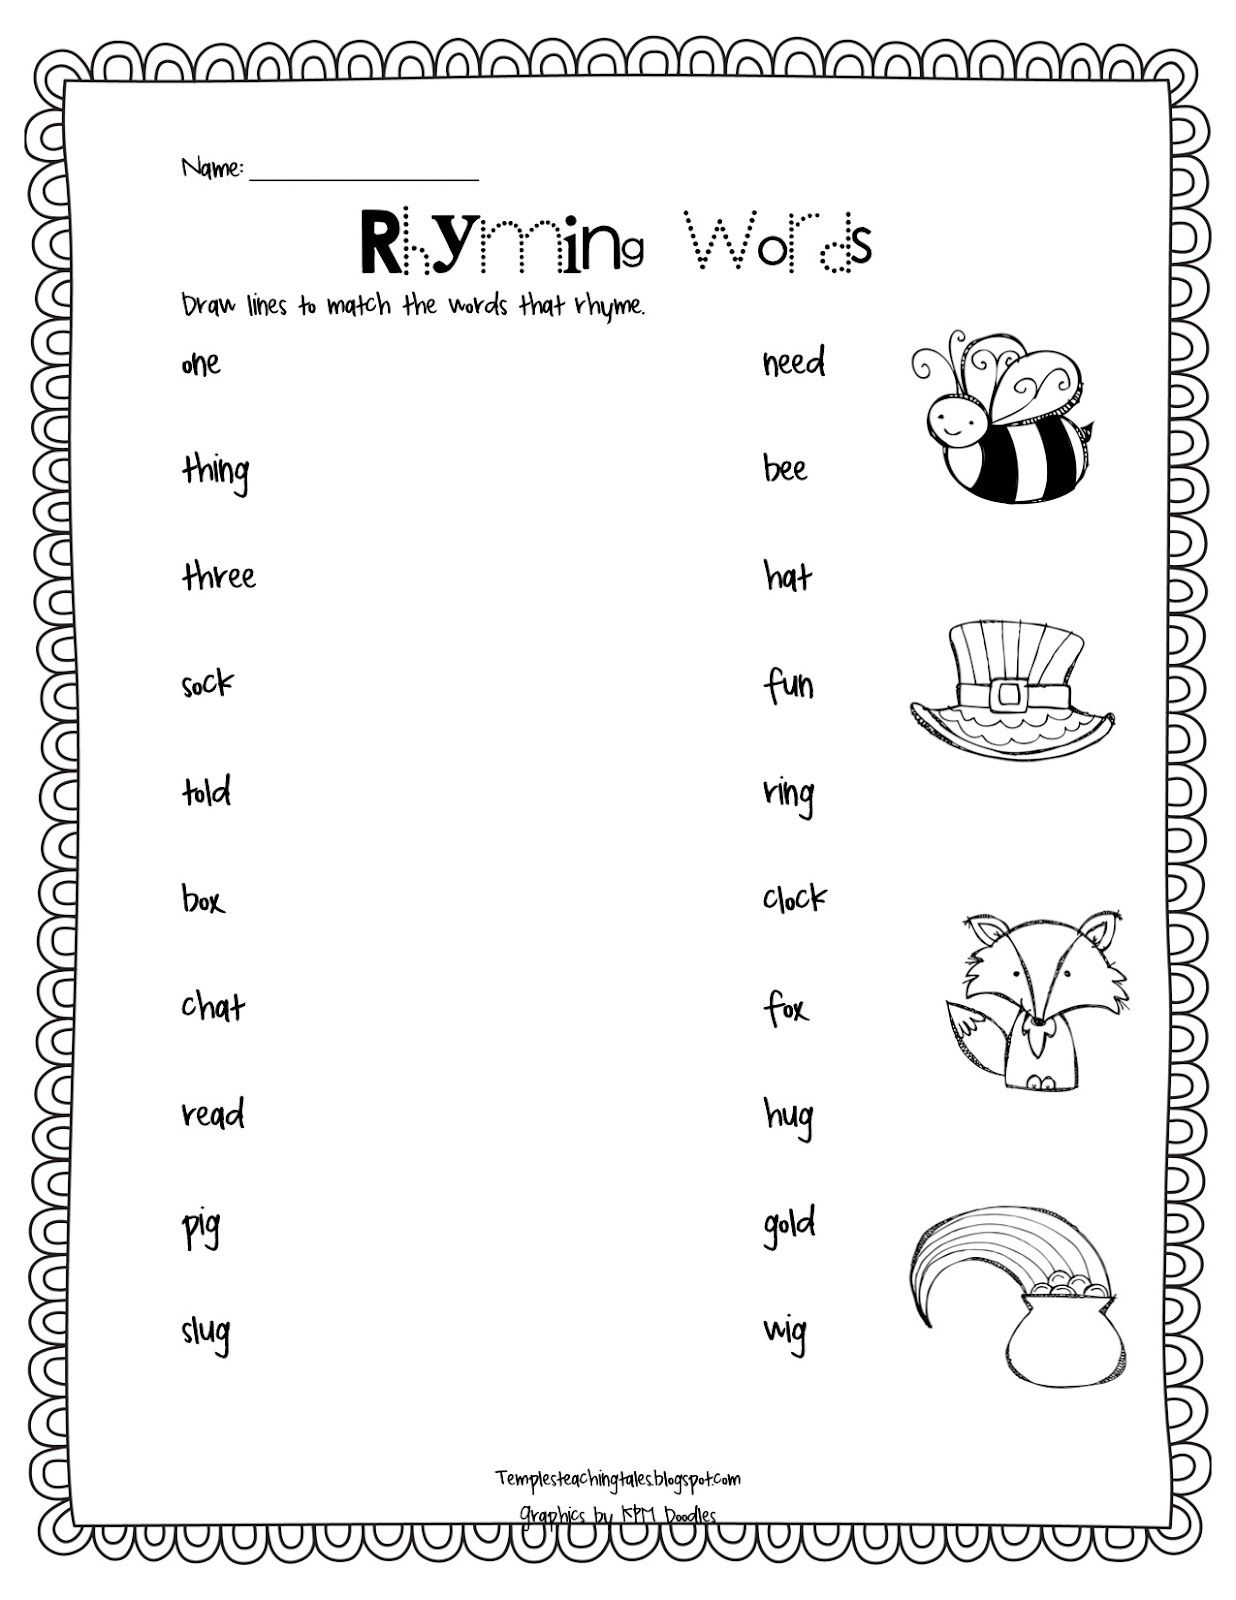 Rhyme words matching worksheets for kindergarten and preschool kids